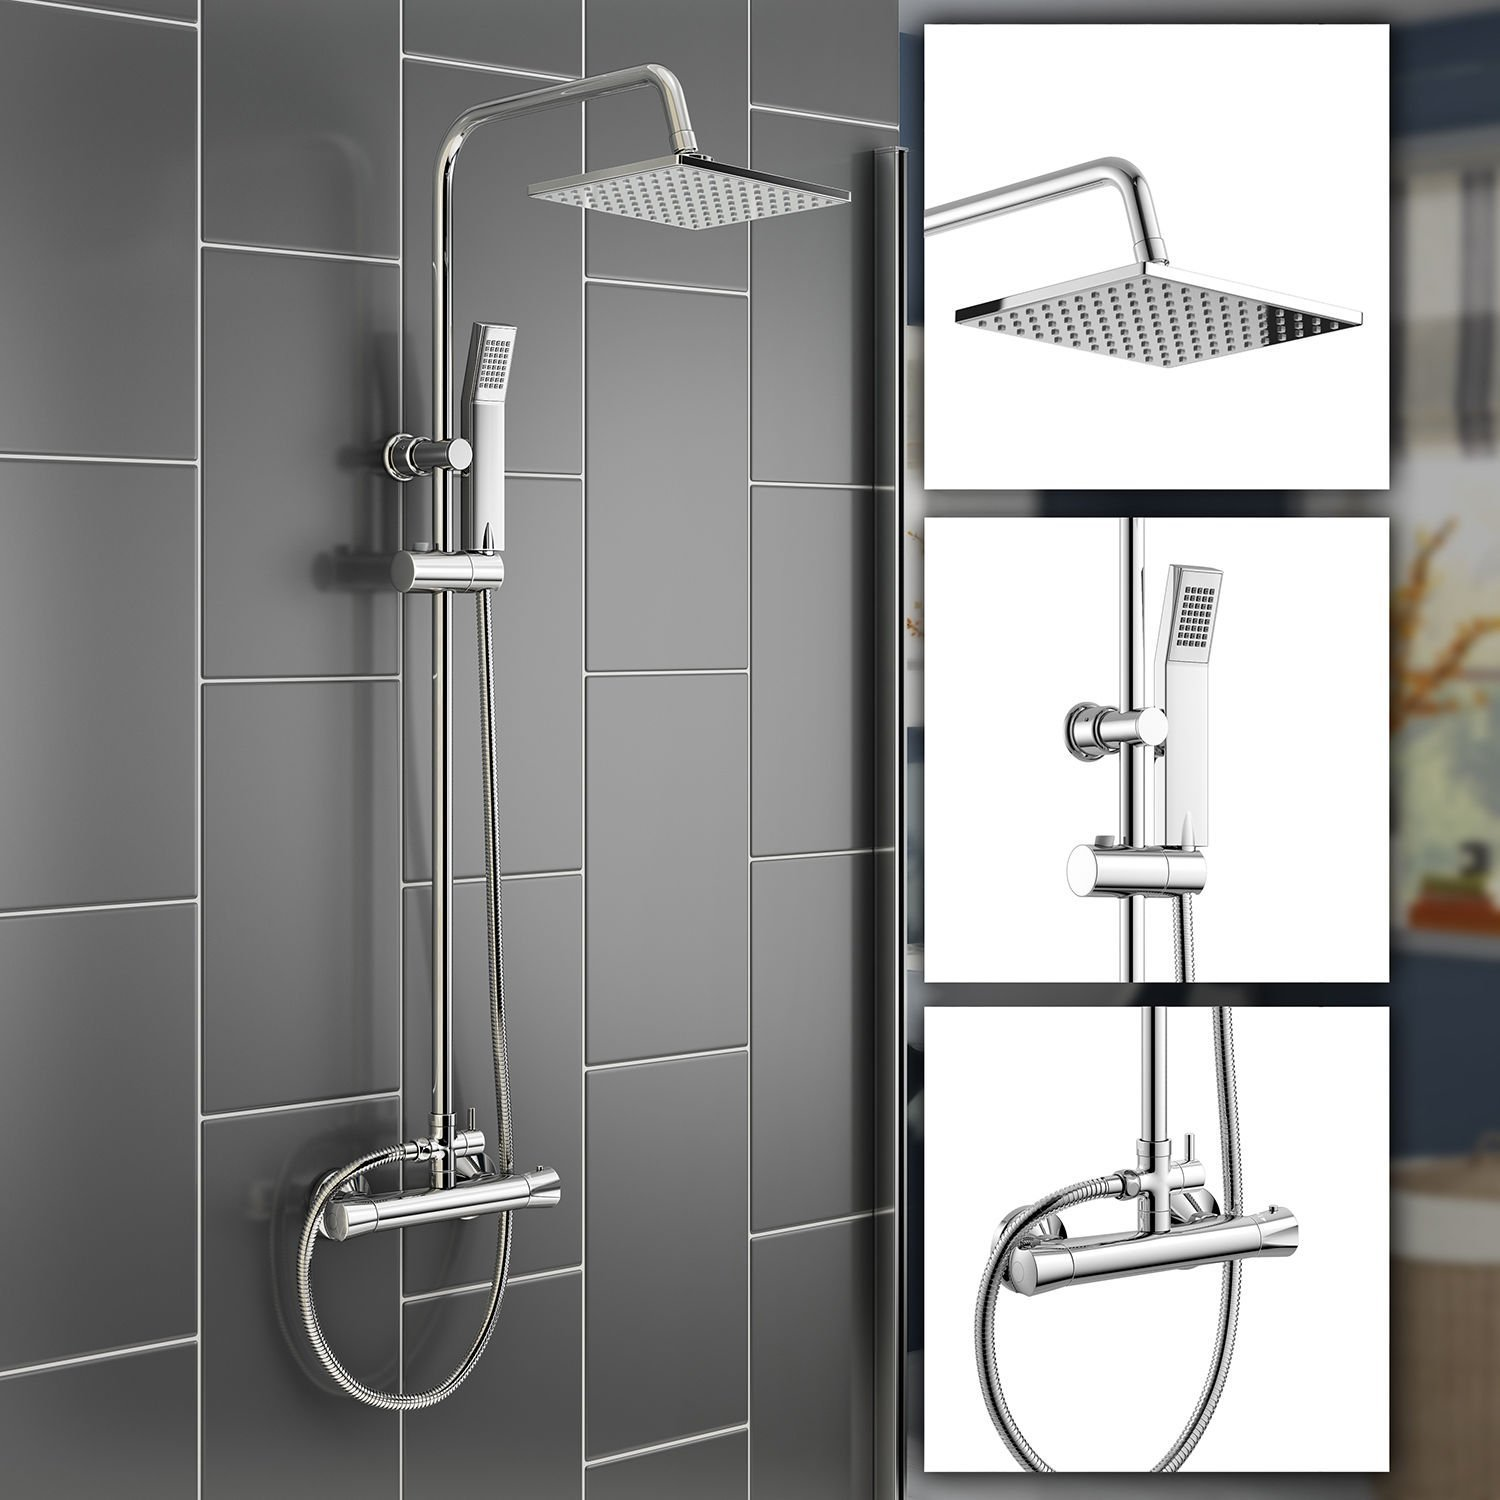 bathroom wikipedia wiki shower plumbing residential